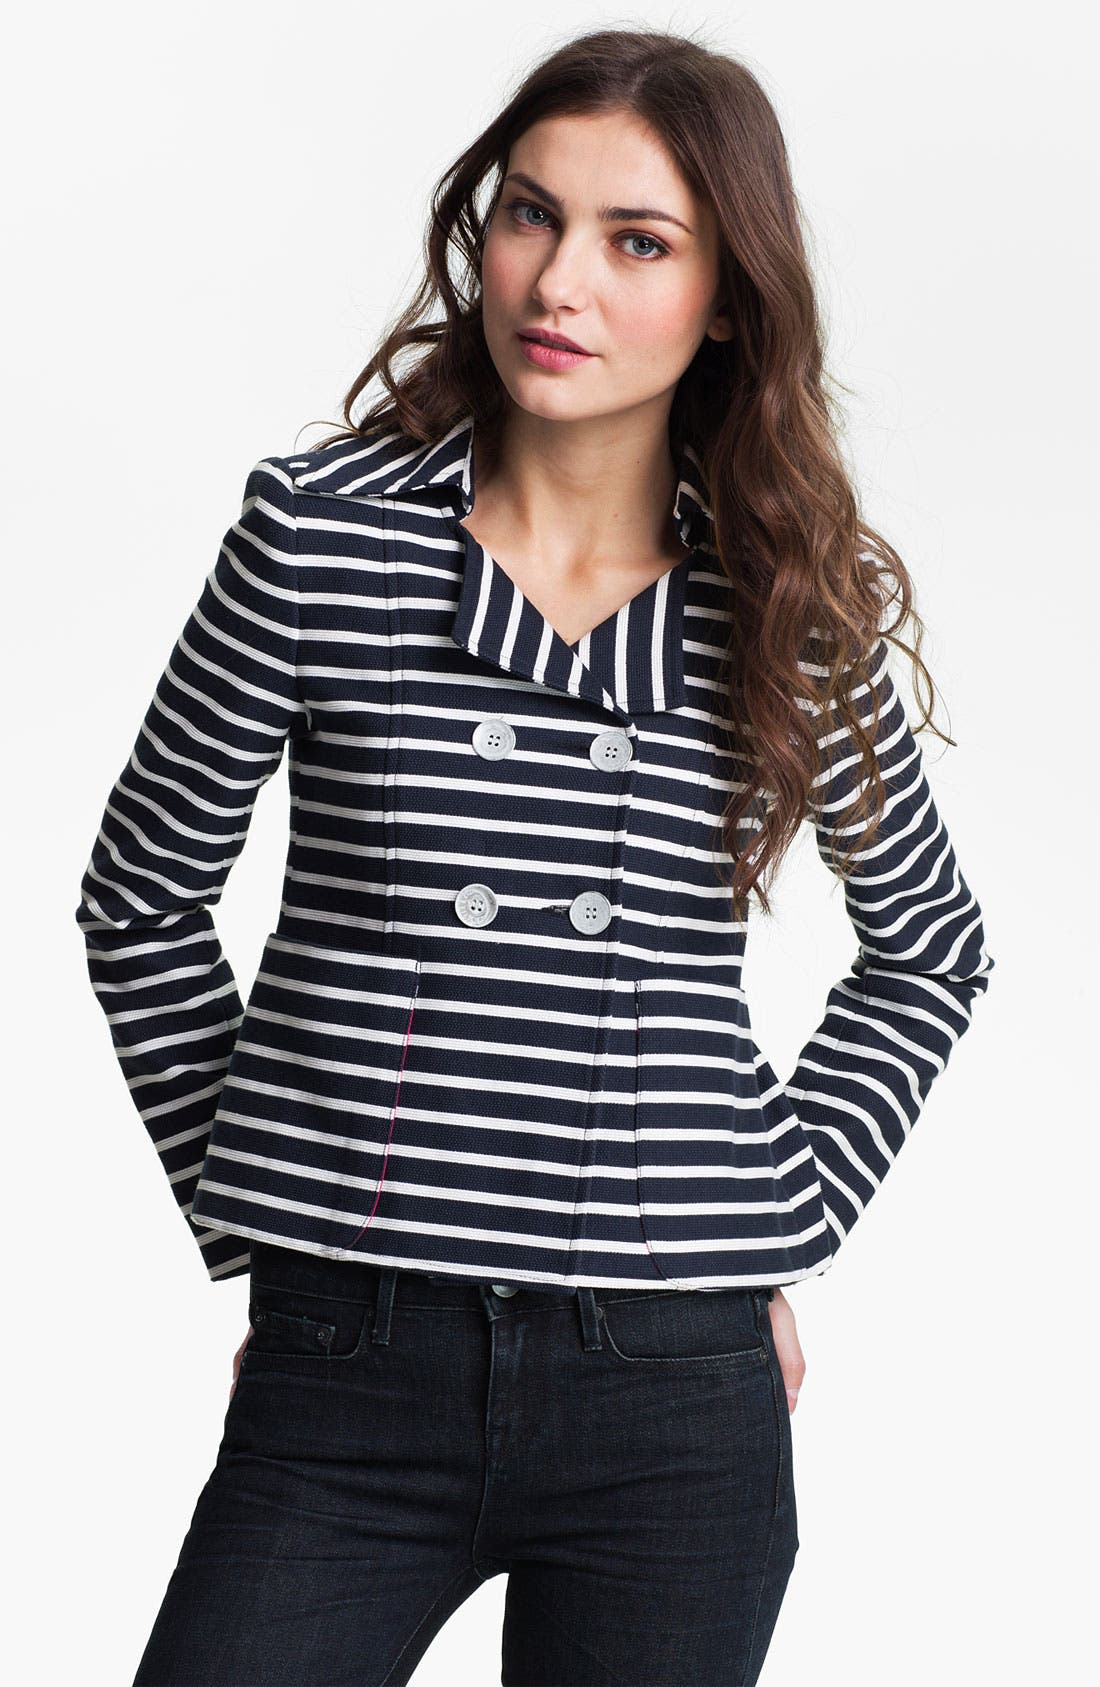 Main Image - Nanette Lepore 'Whaam' Stripe Jacket